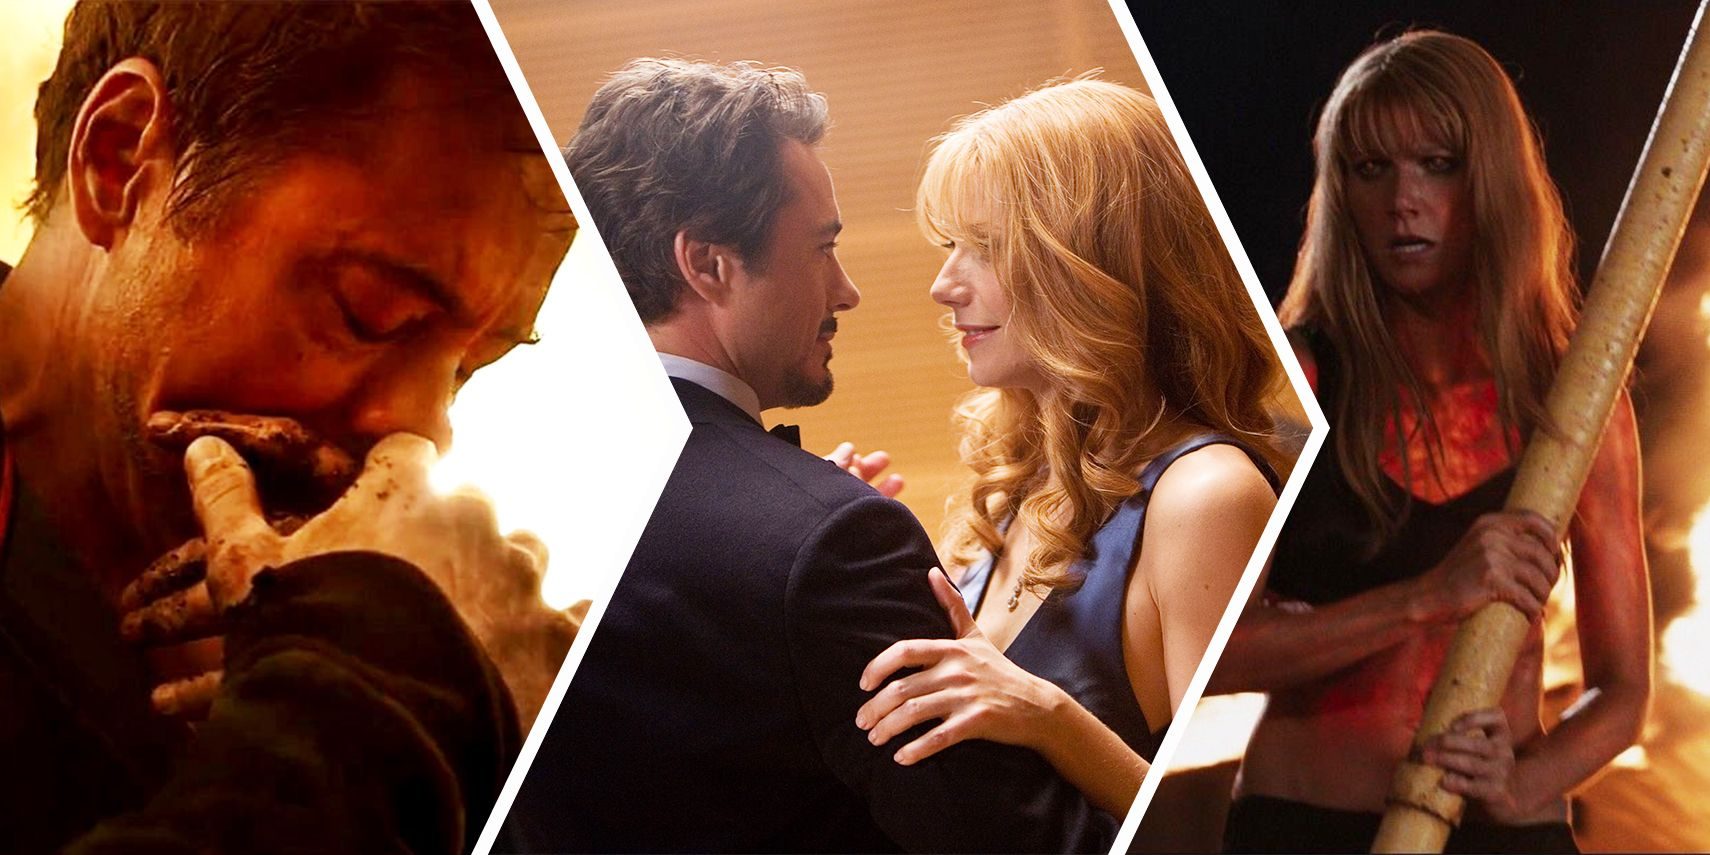 What Fans Know Of Tony Stark & Pepper Potts | ScreenRant